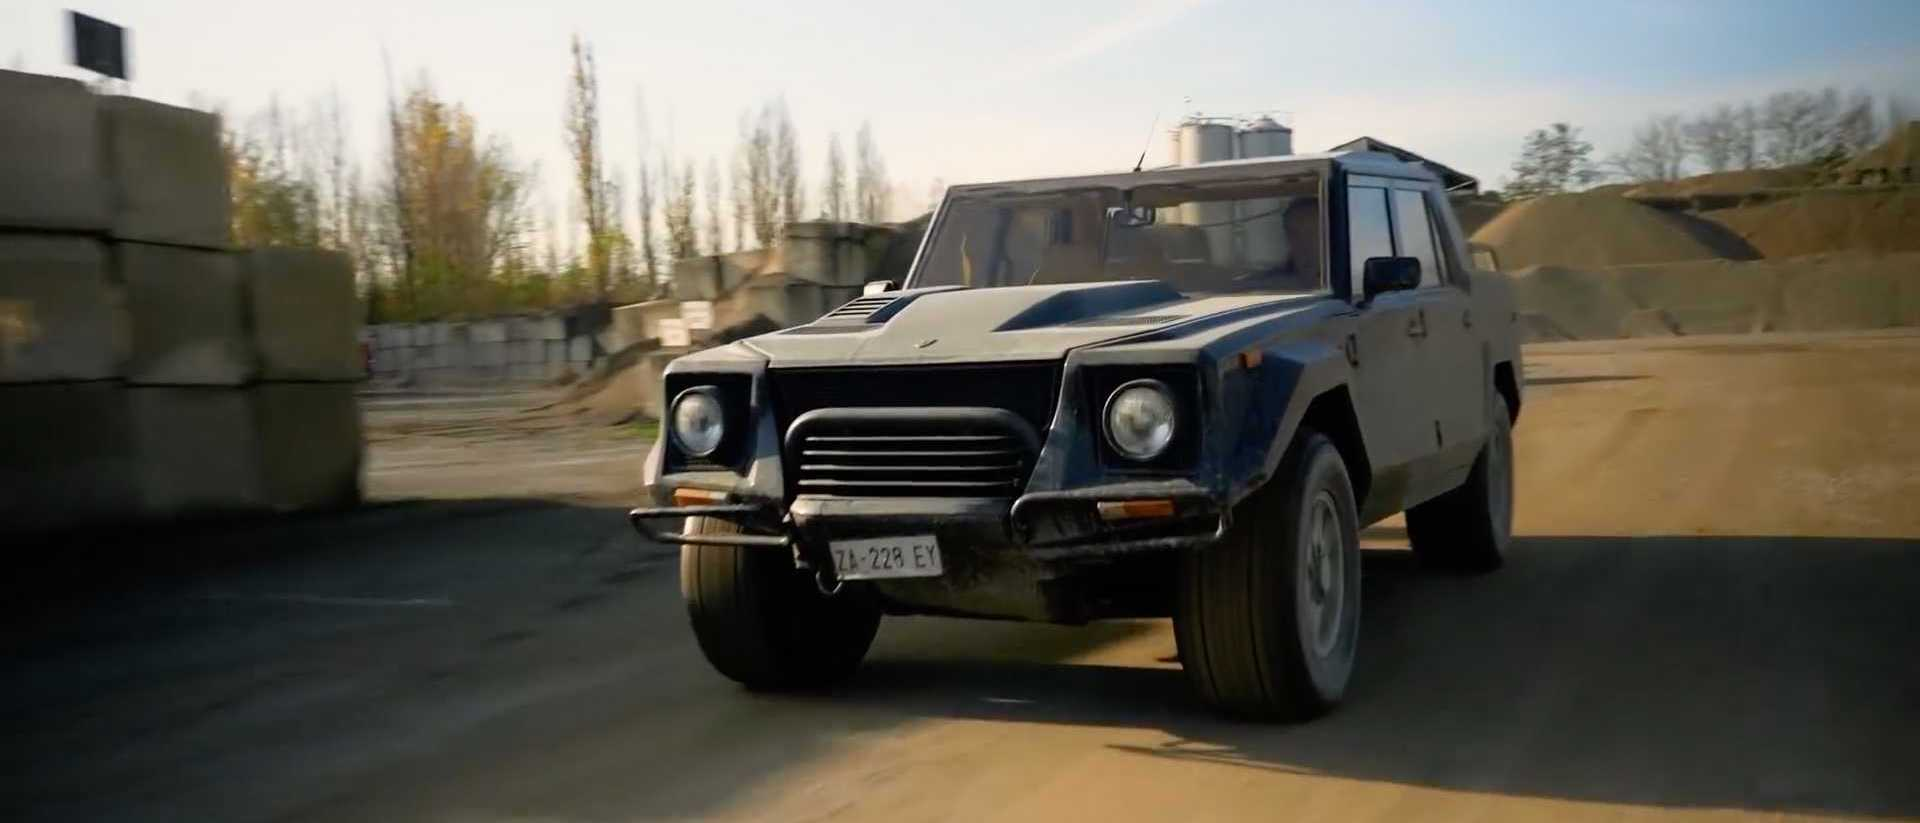 Top Gear Takes The Lamborghini LM002 Out For Fun In The Mud